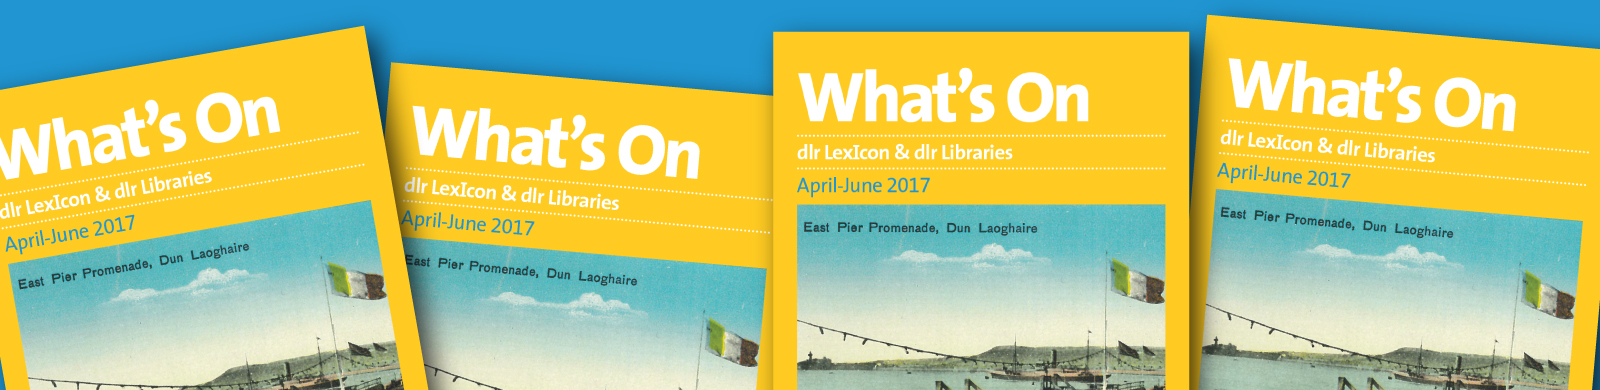 What's On: April-June 2017